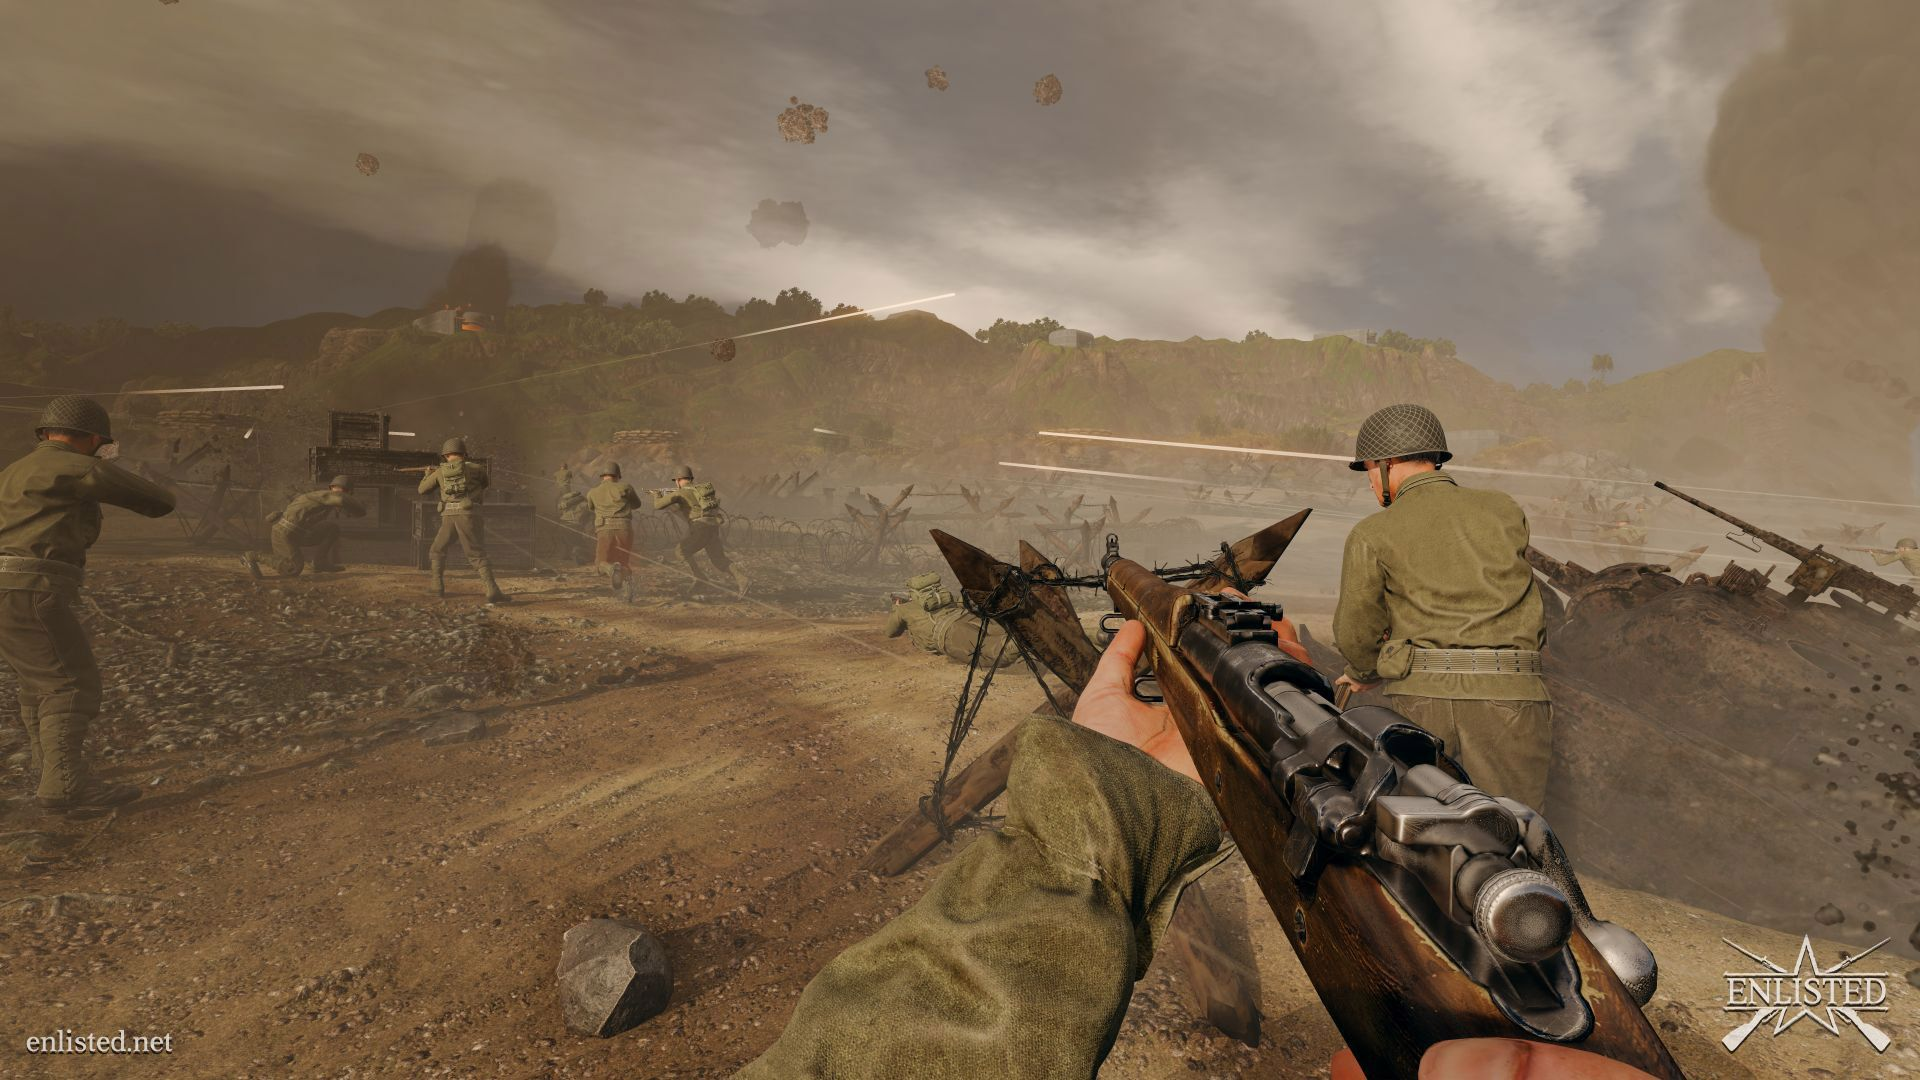 Enlisted - MMO squad-based shooter